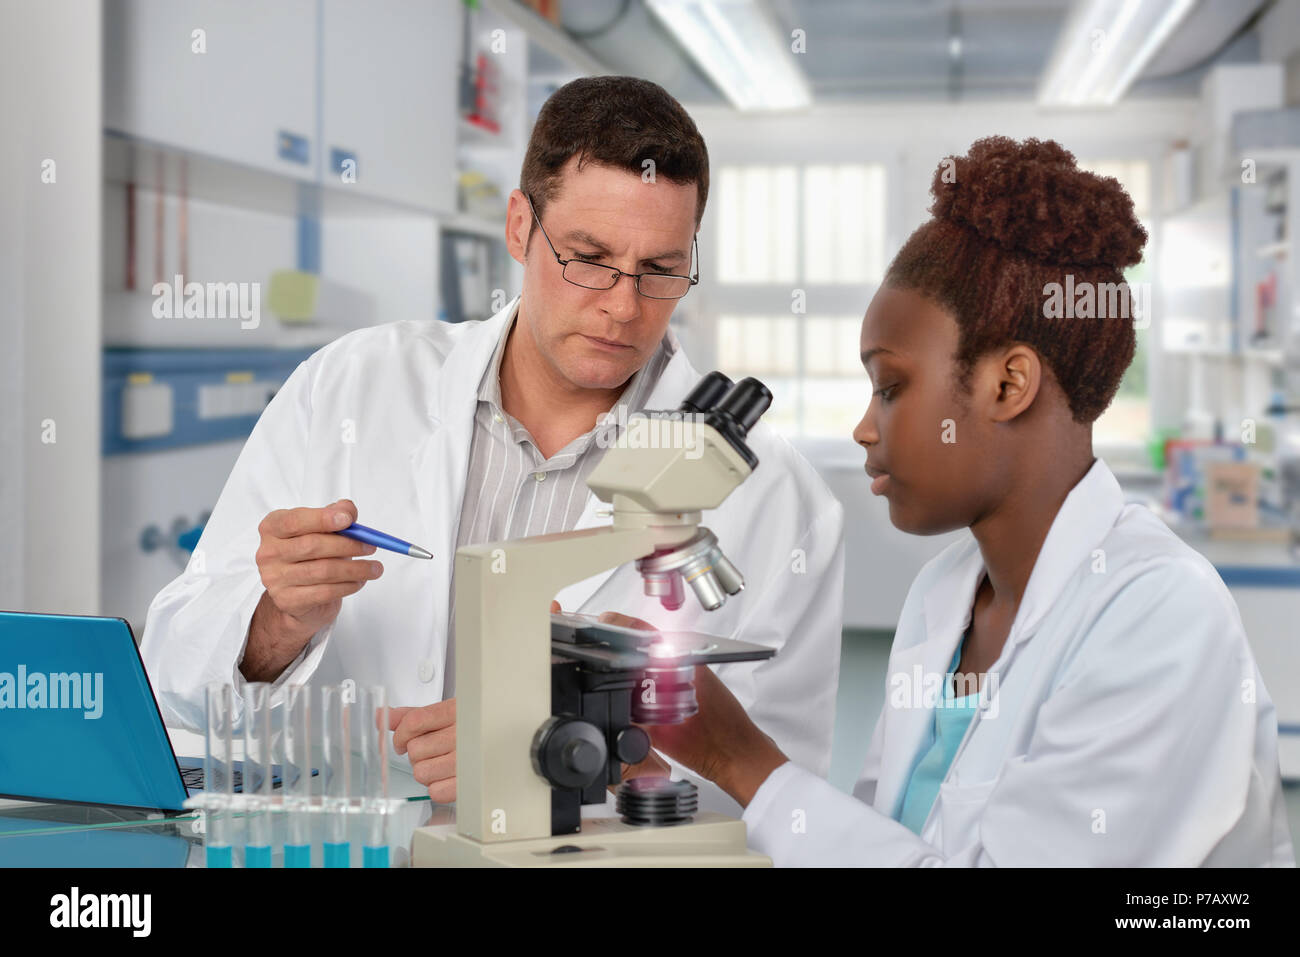 Scientists, senior Caucasian male and young African female, work with a microscope in research laboratory. Shallow DOF, focus on the face of the man. - Stock Image